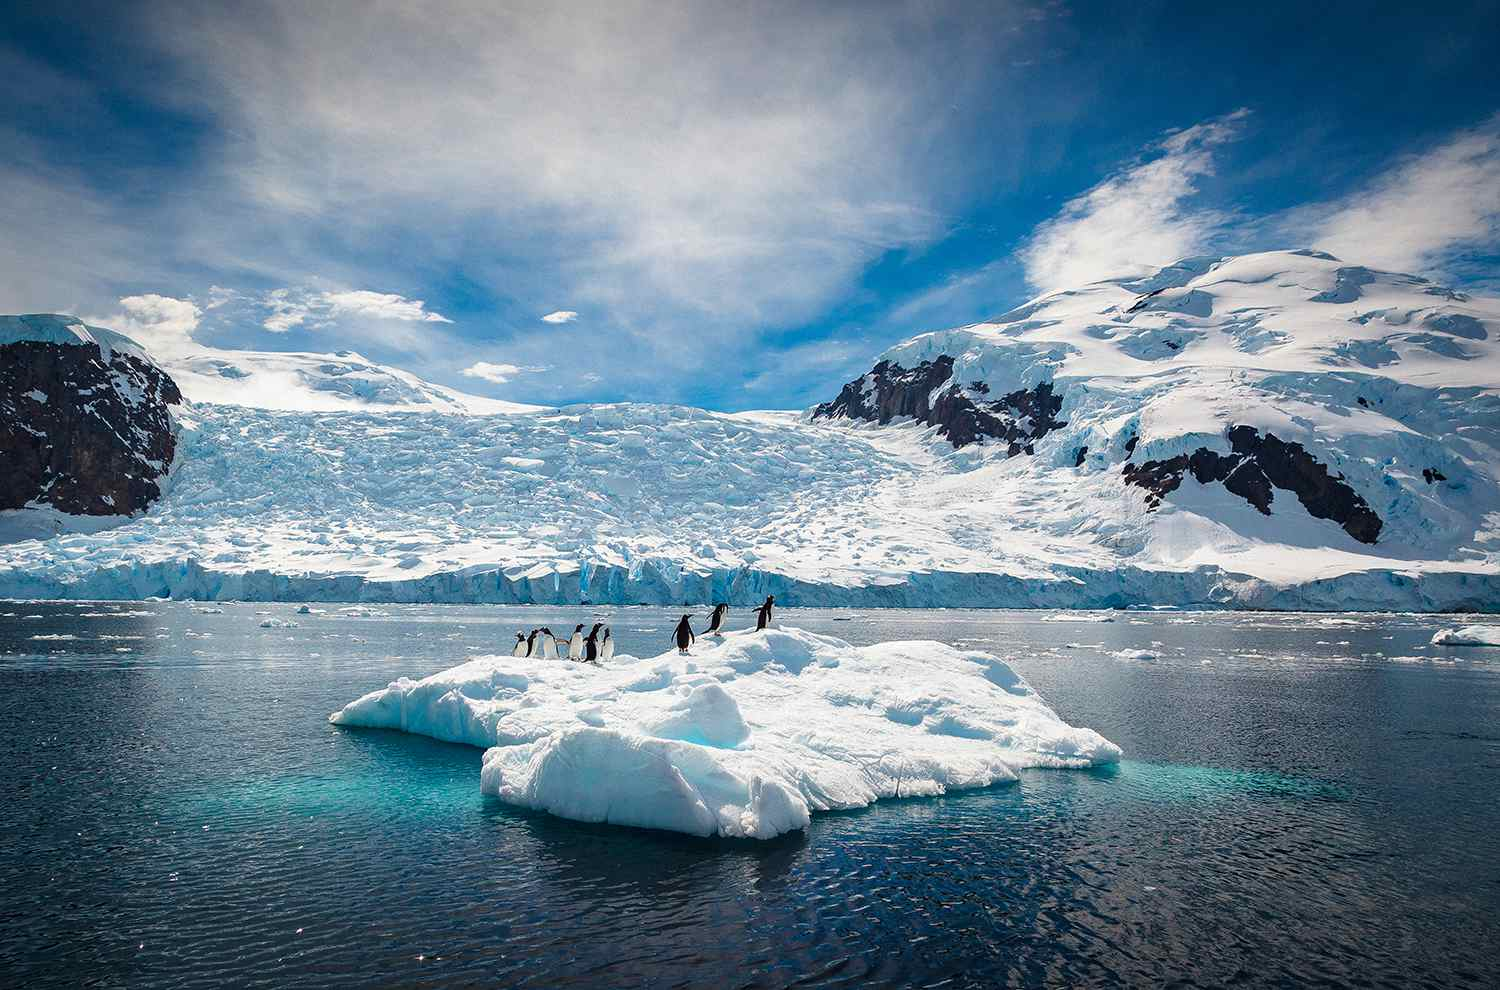 Penguins relax on a small iceberg, Antarctica.